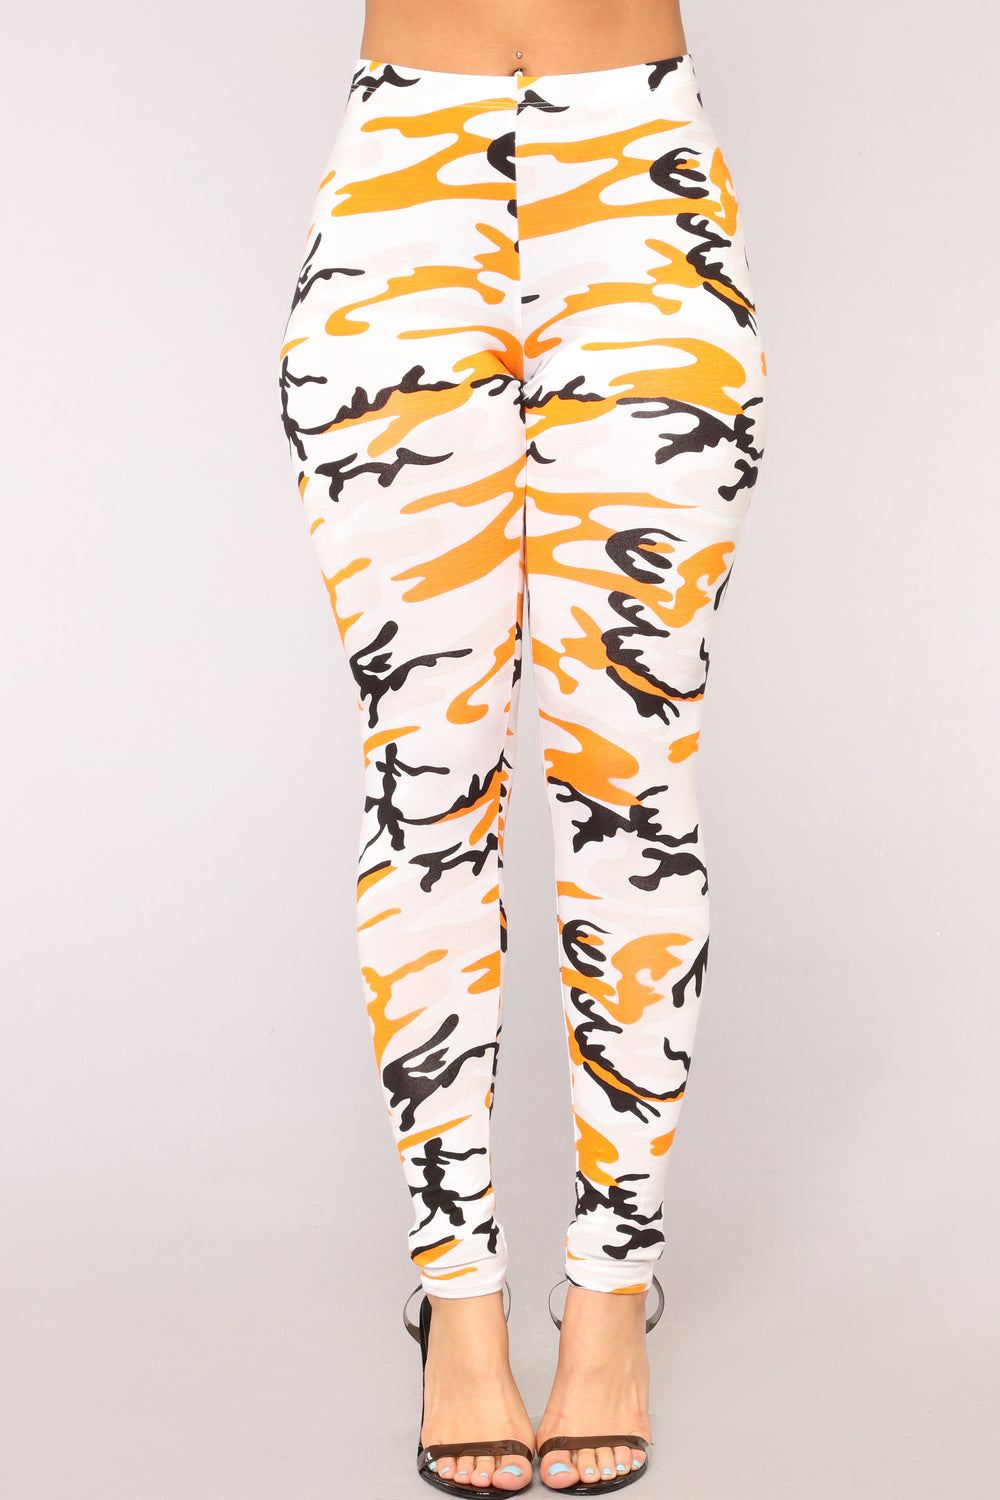 Look Alive Camo Set - Orange/Grey